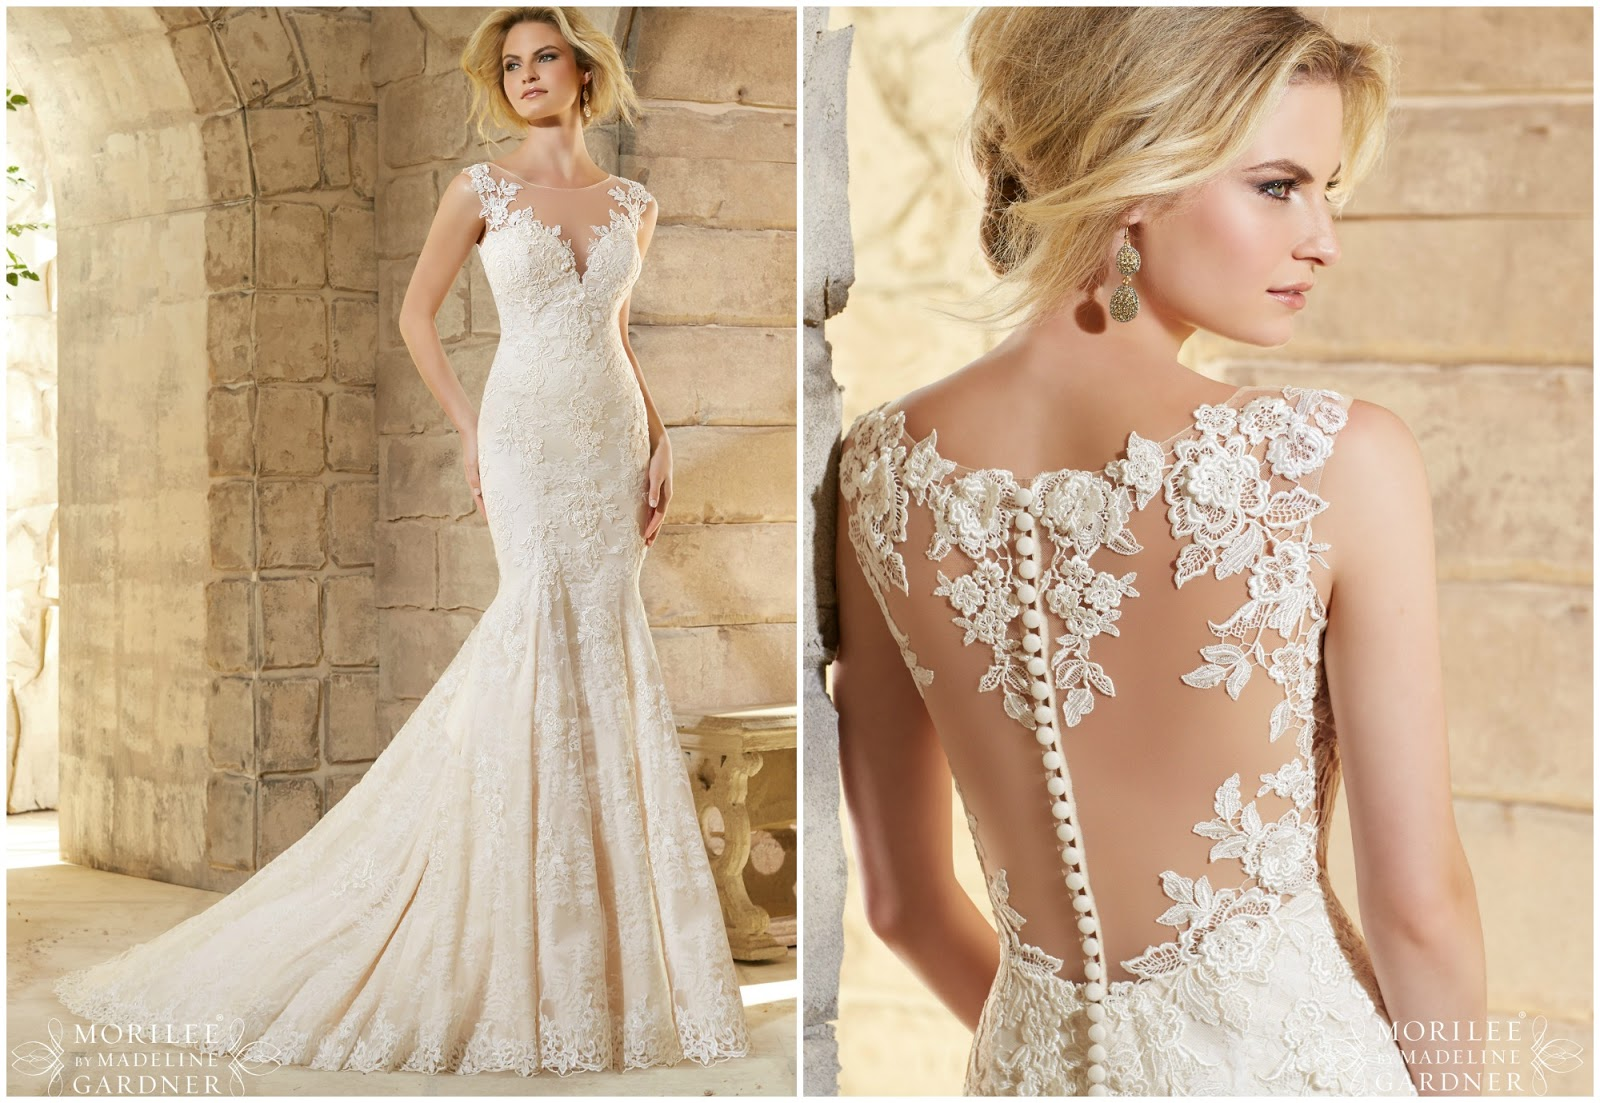 Brides of america online store 2015 wednesday december 9 2015 ombrellifo Images